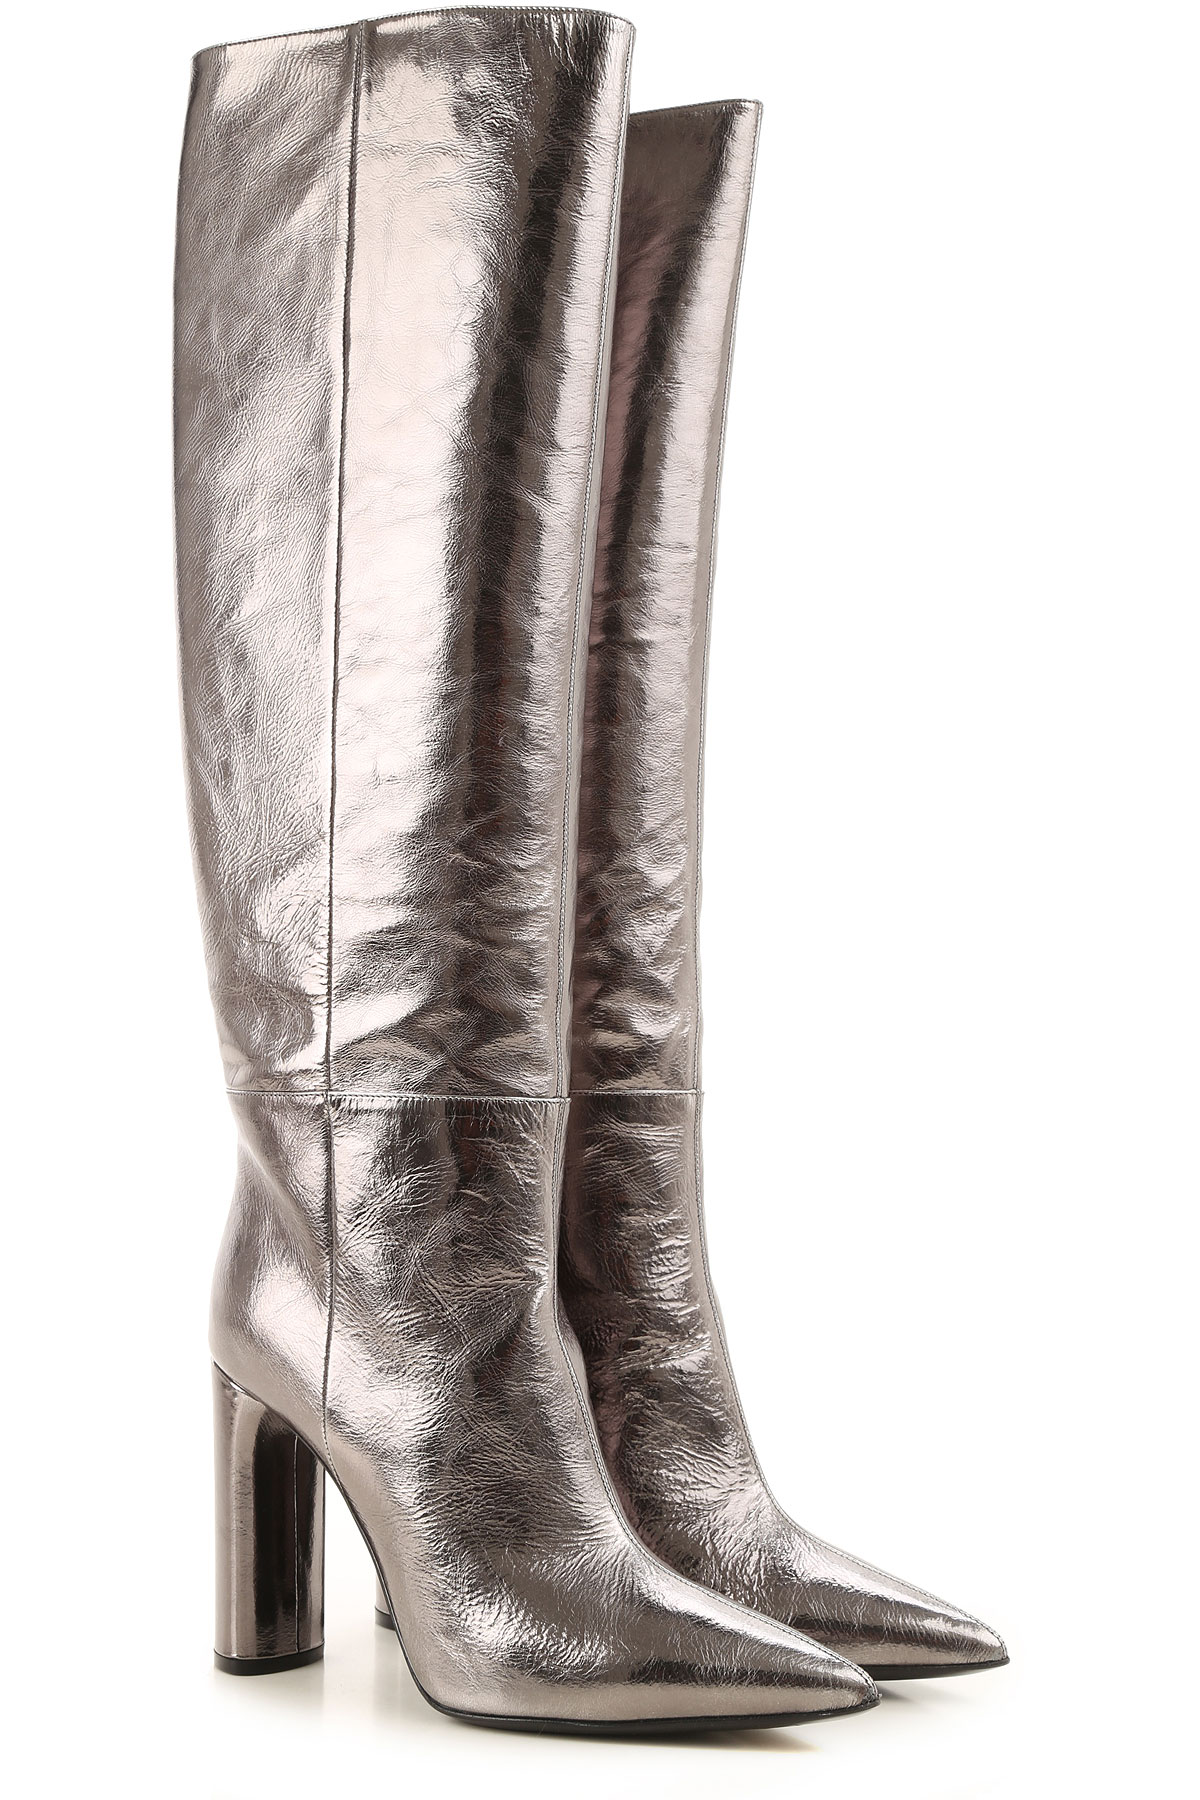 Casadei Boots for Women, Booties On Sale, Silver, Leather, 2019, 10 11 7 9